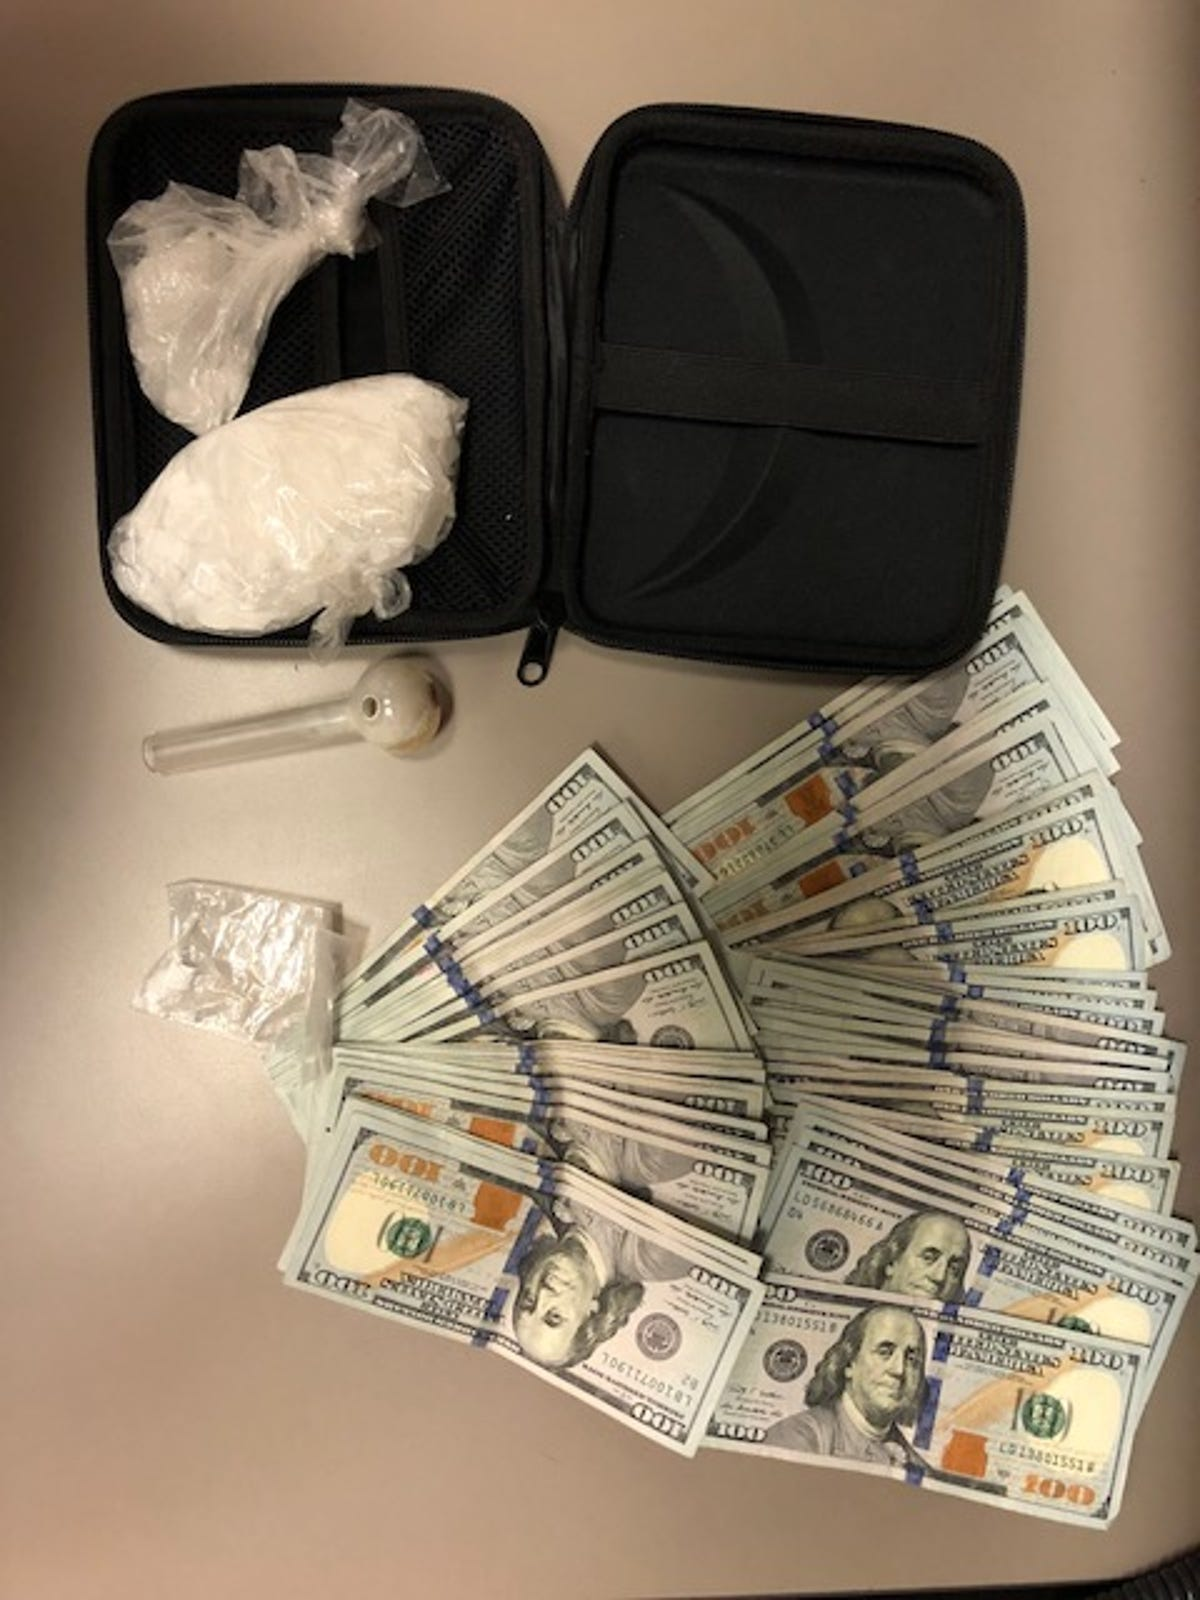 Police: Lemoore man found with meth, cash during traffic stop